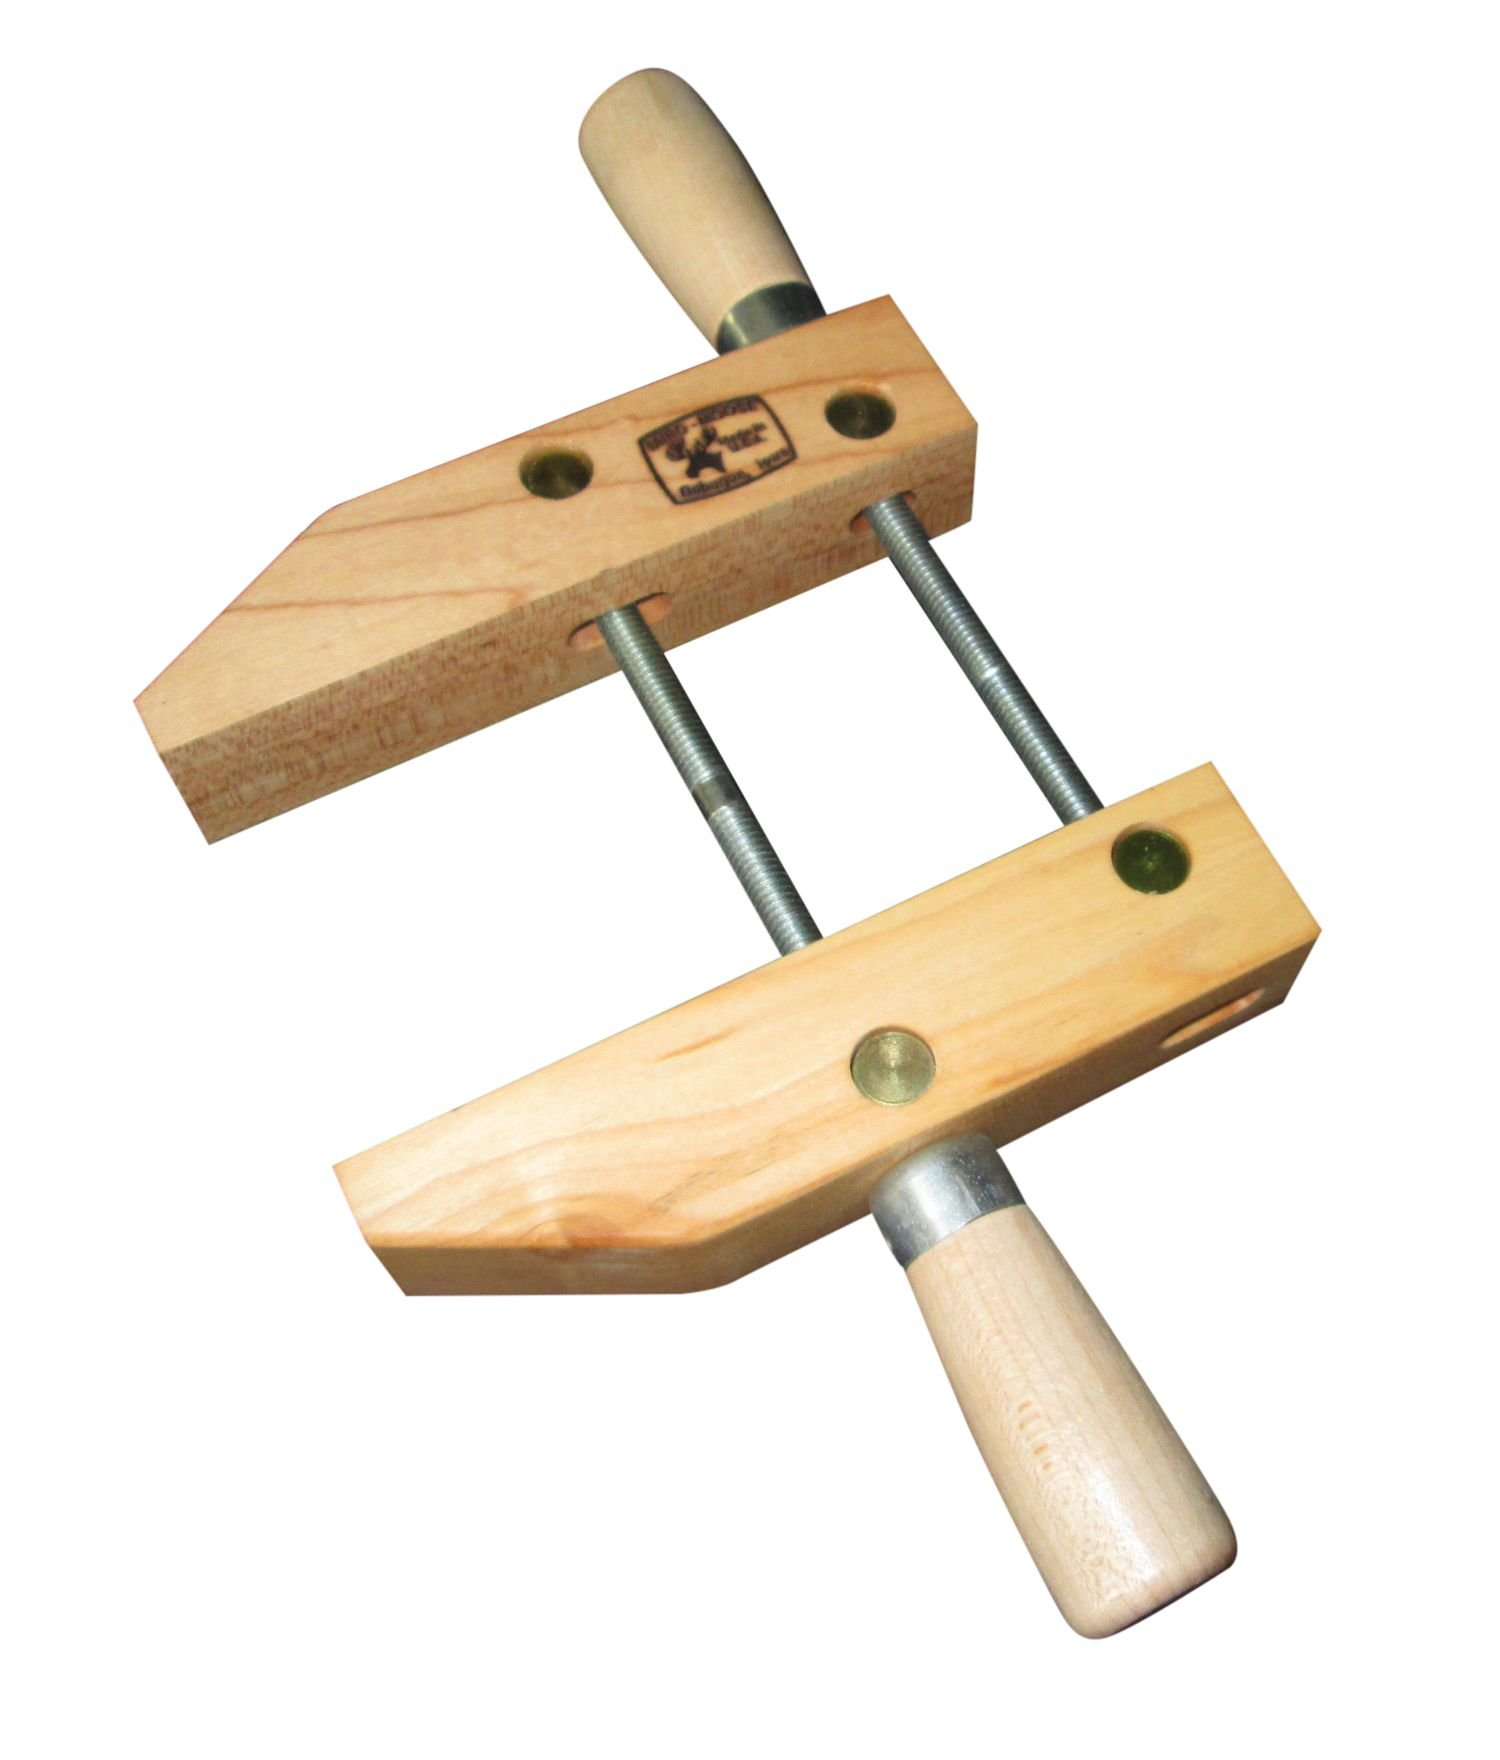 Dubuque Clamp Works Made in USA Wood Hand Screw Clamp 6 inch Hard Maple jaw by Dubuque Clamp Works